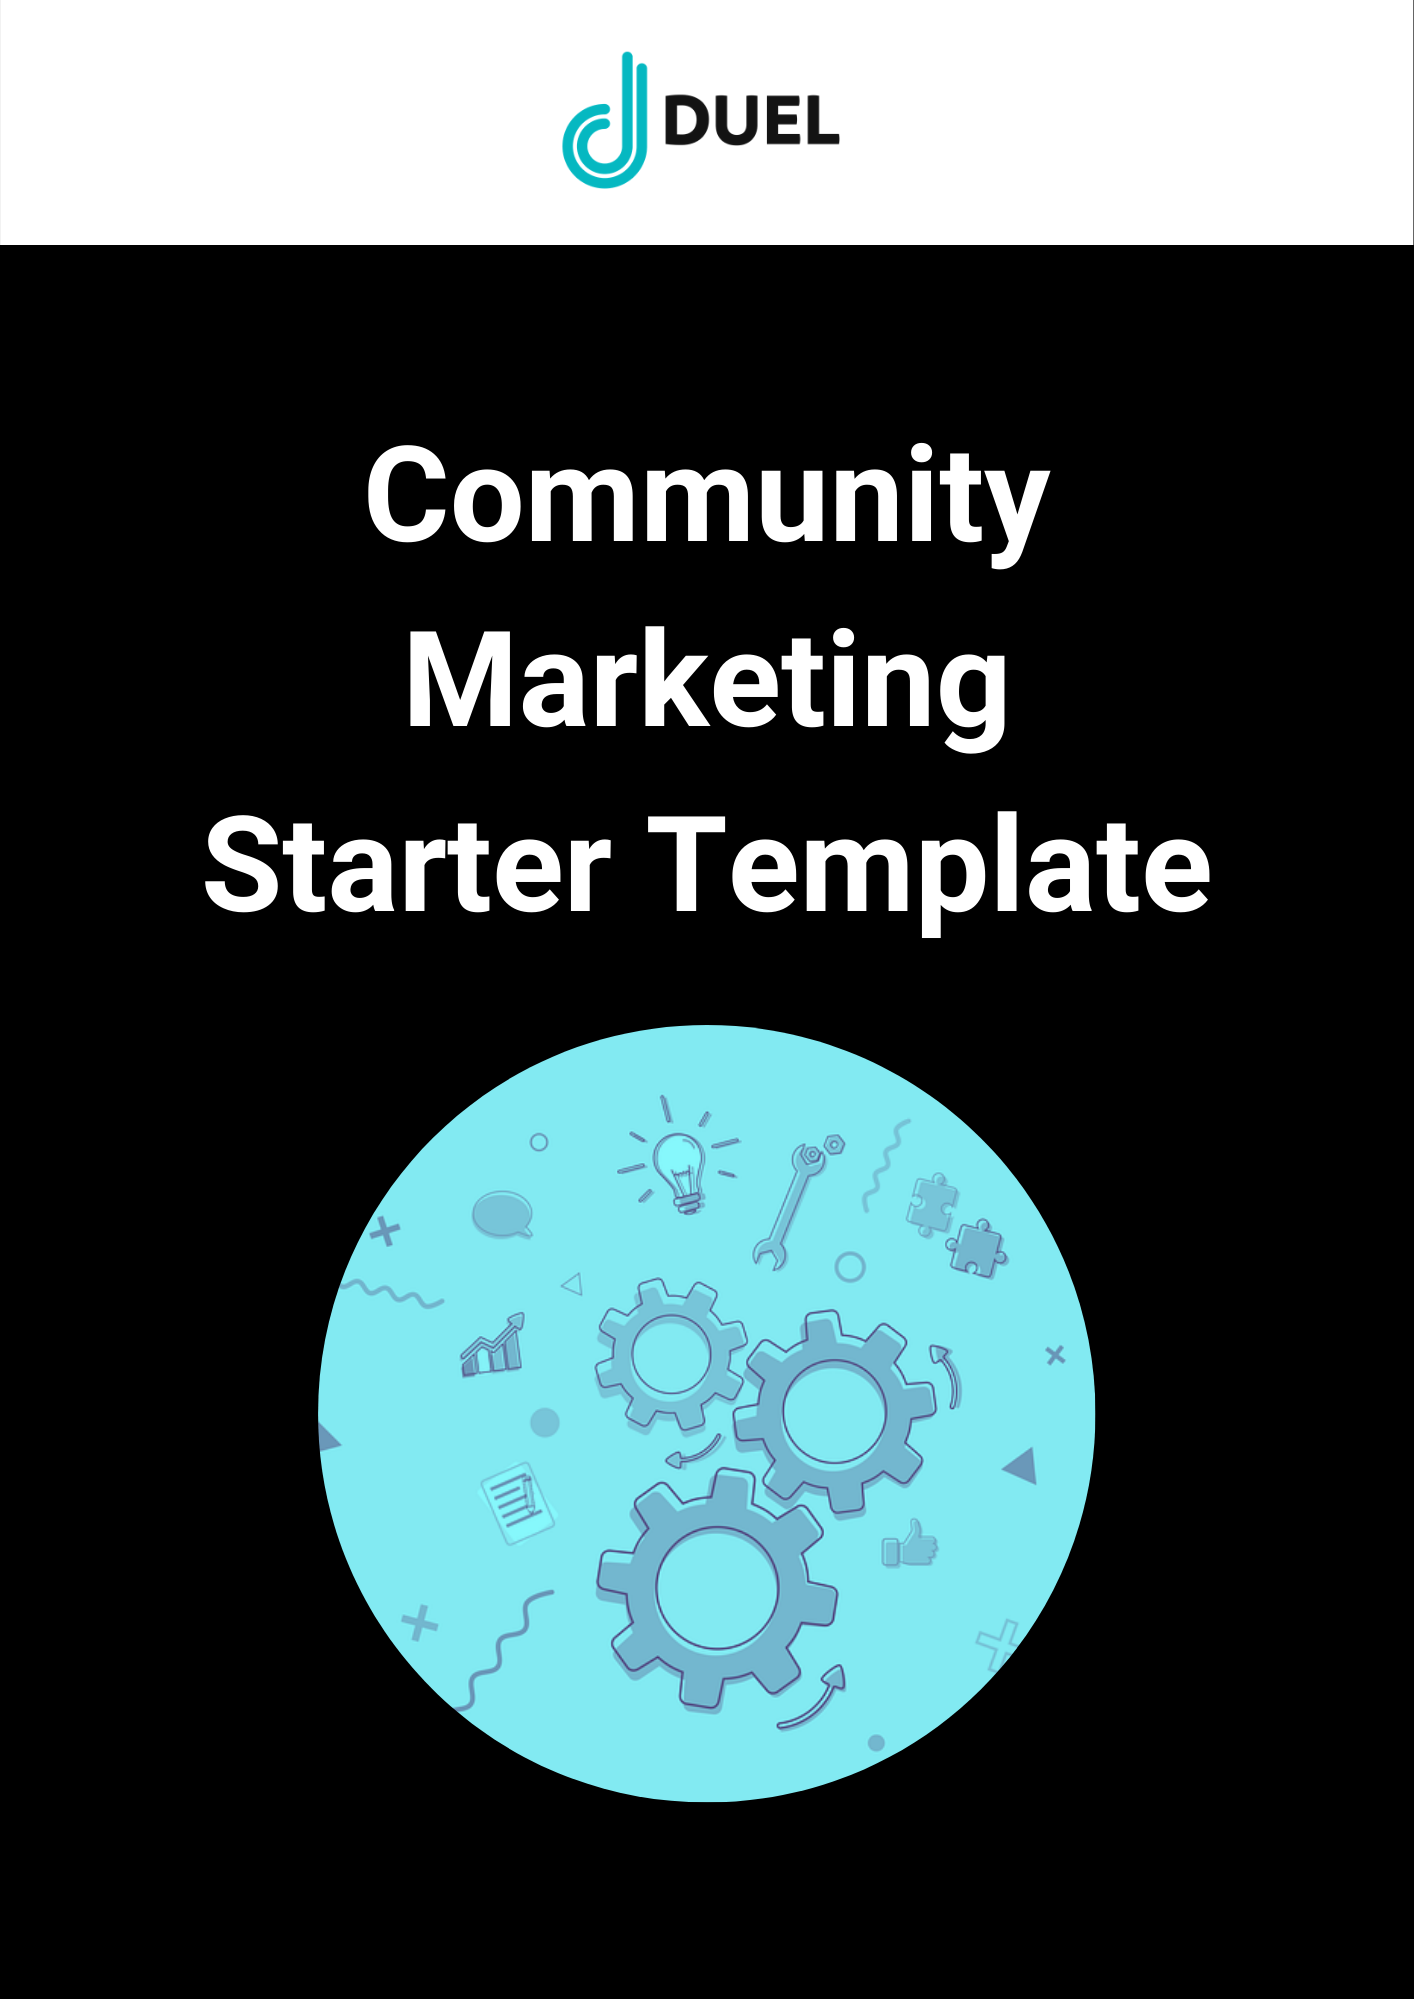 Community Marketing Starter Template